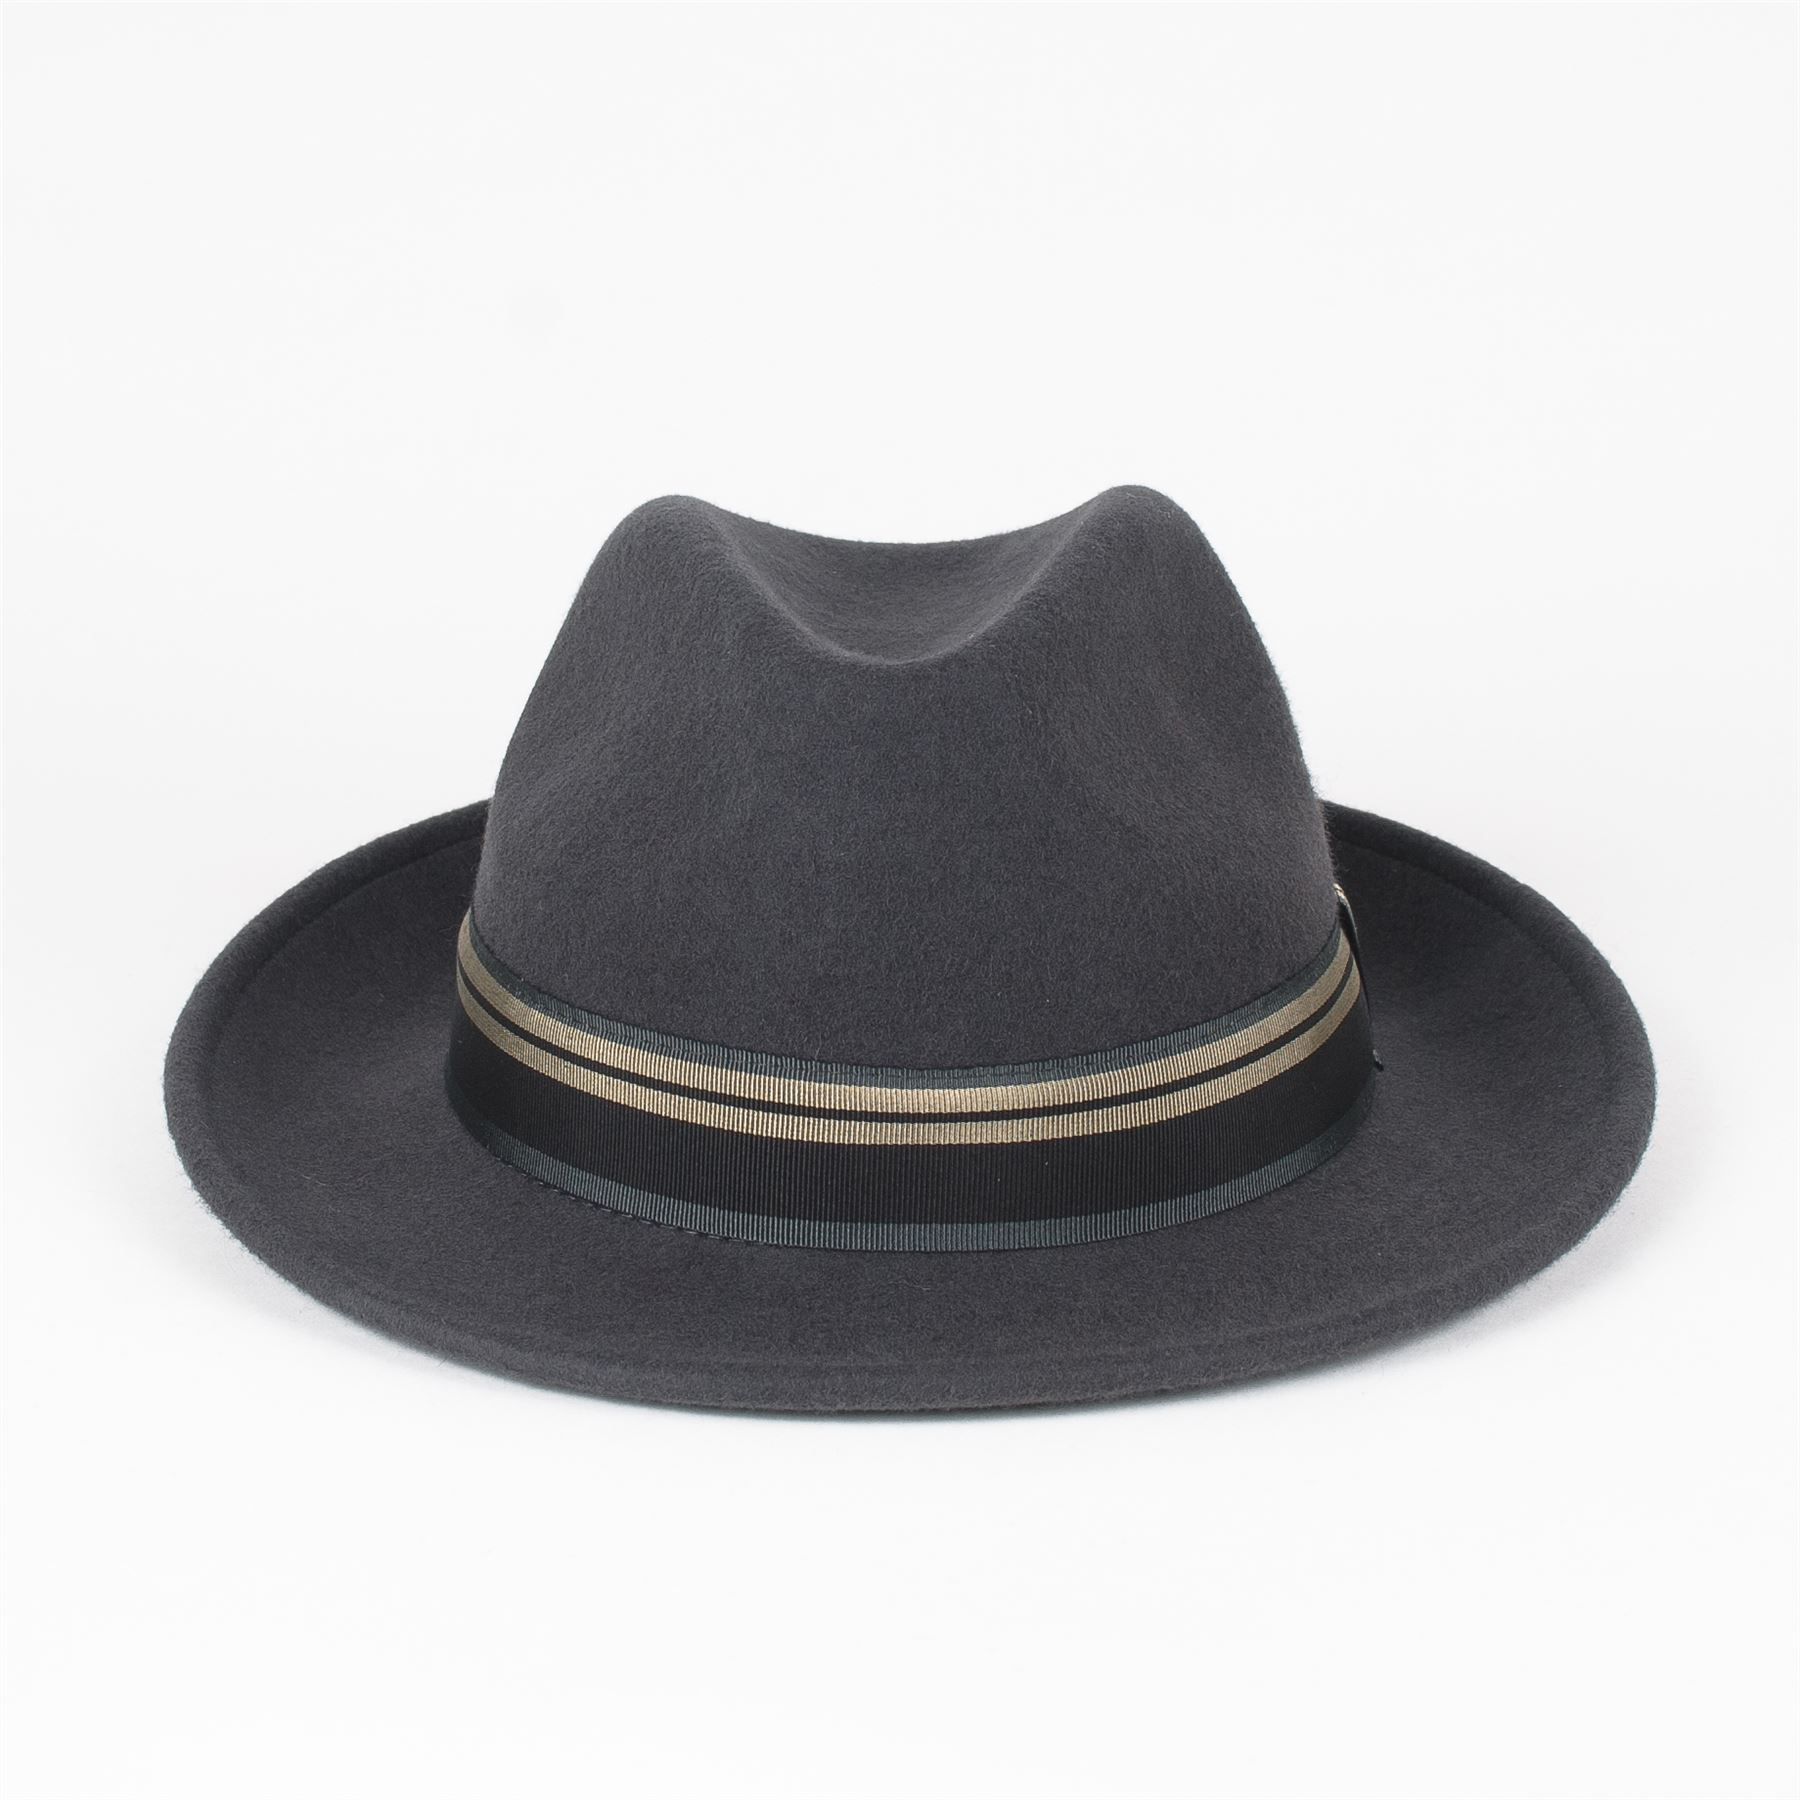 Stylish-100-Wool-Fedora-Hat-Waterproof-amp-Crushable- 14382136ab29